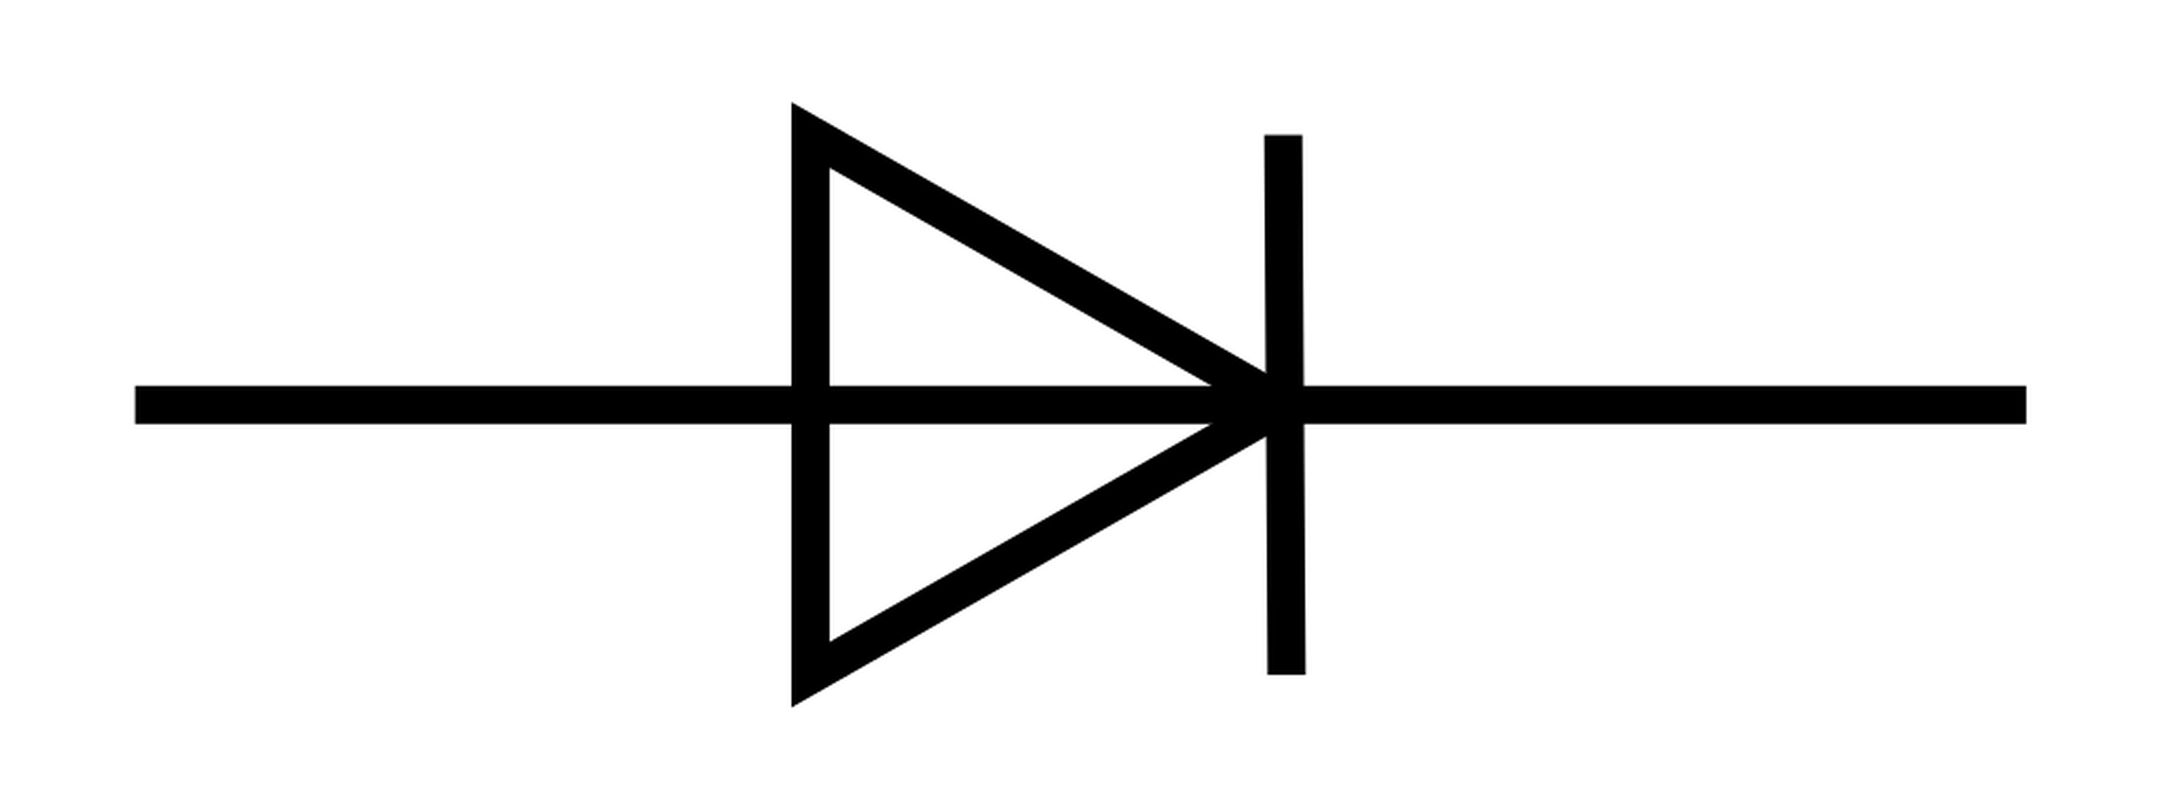 what is this symbol